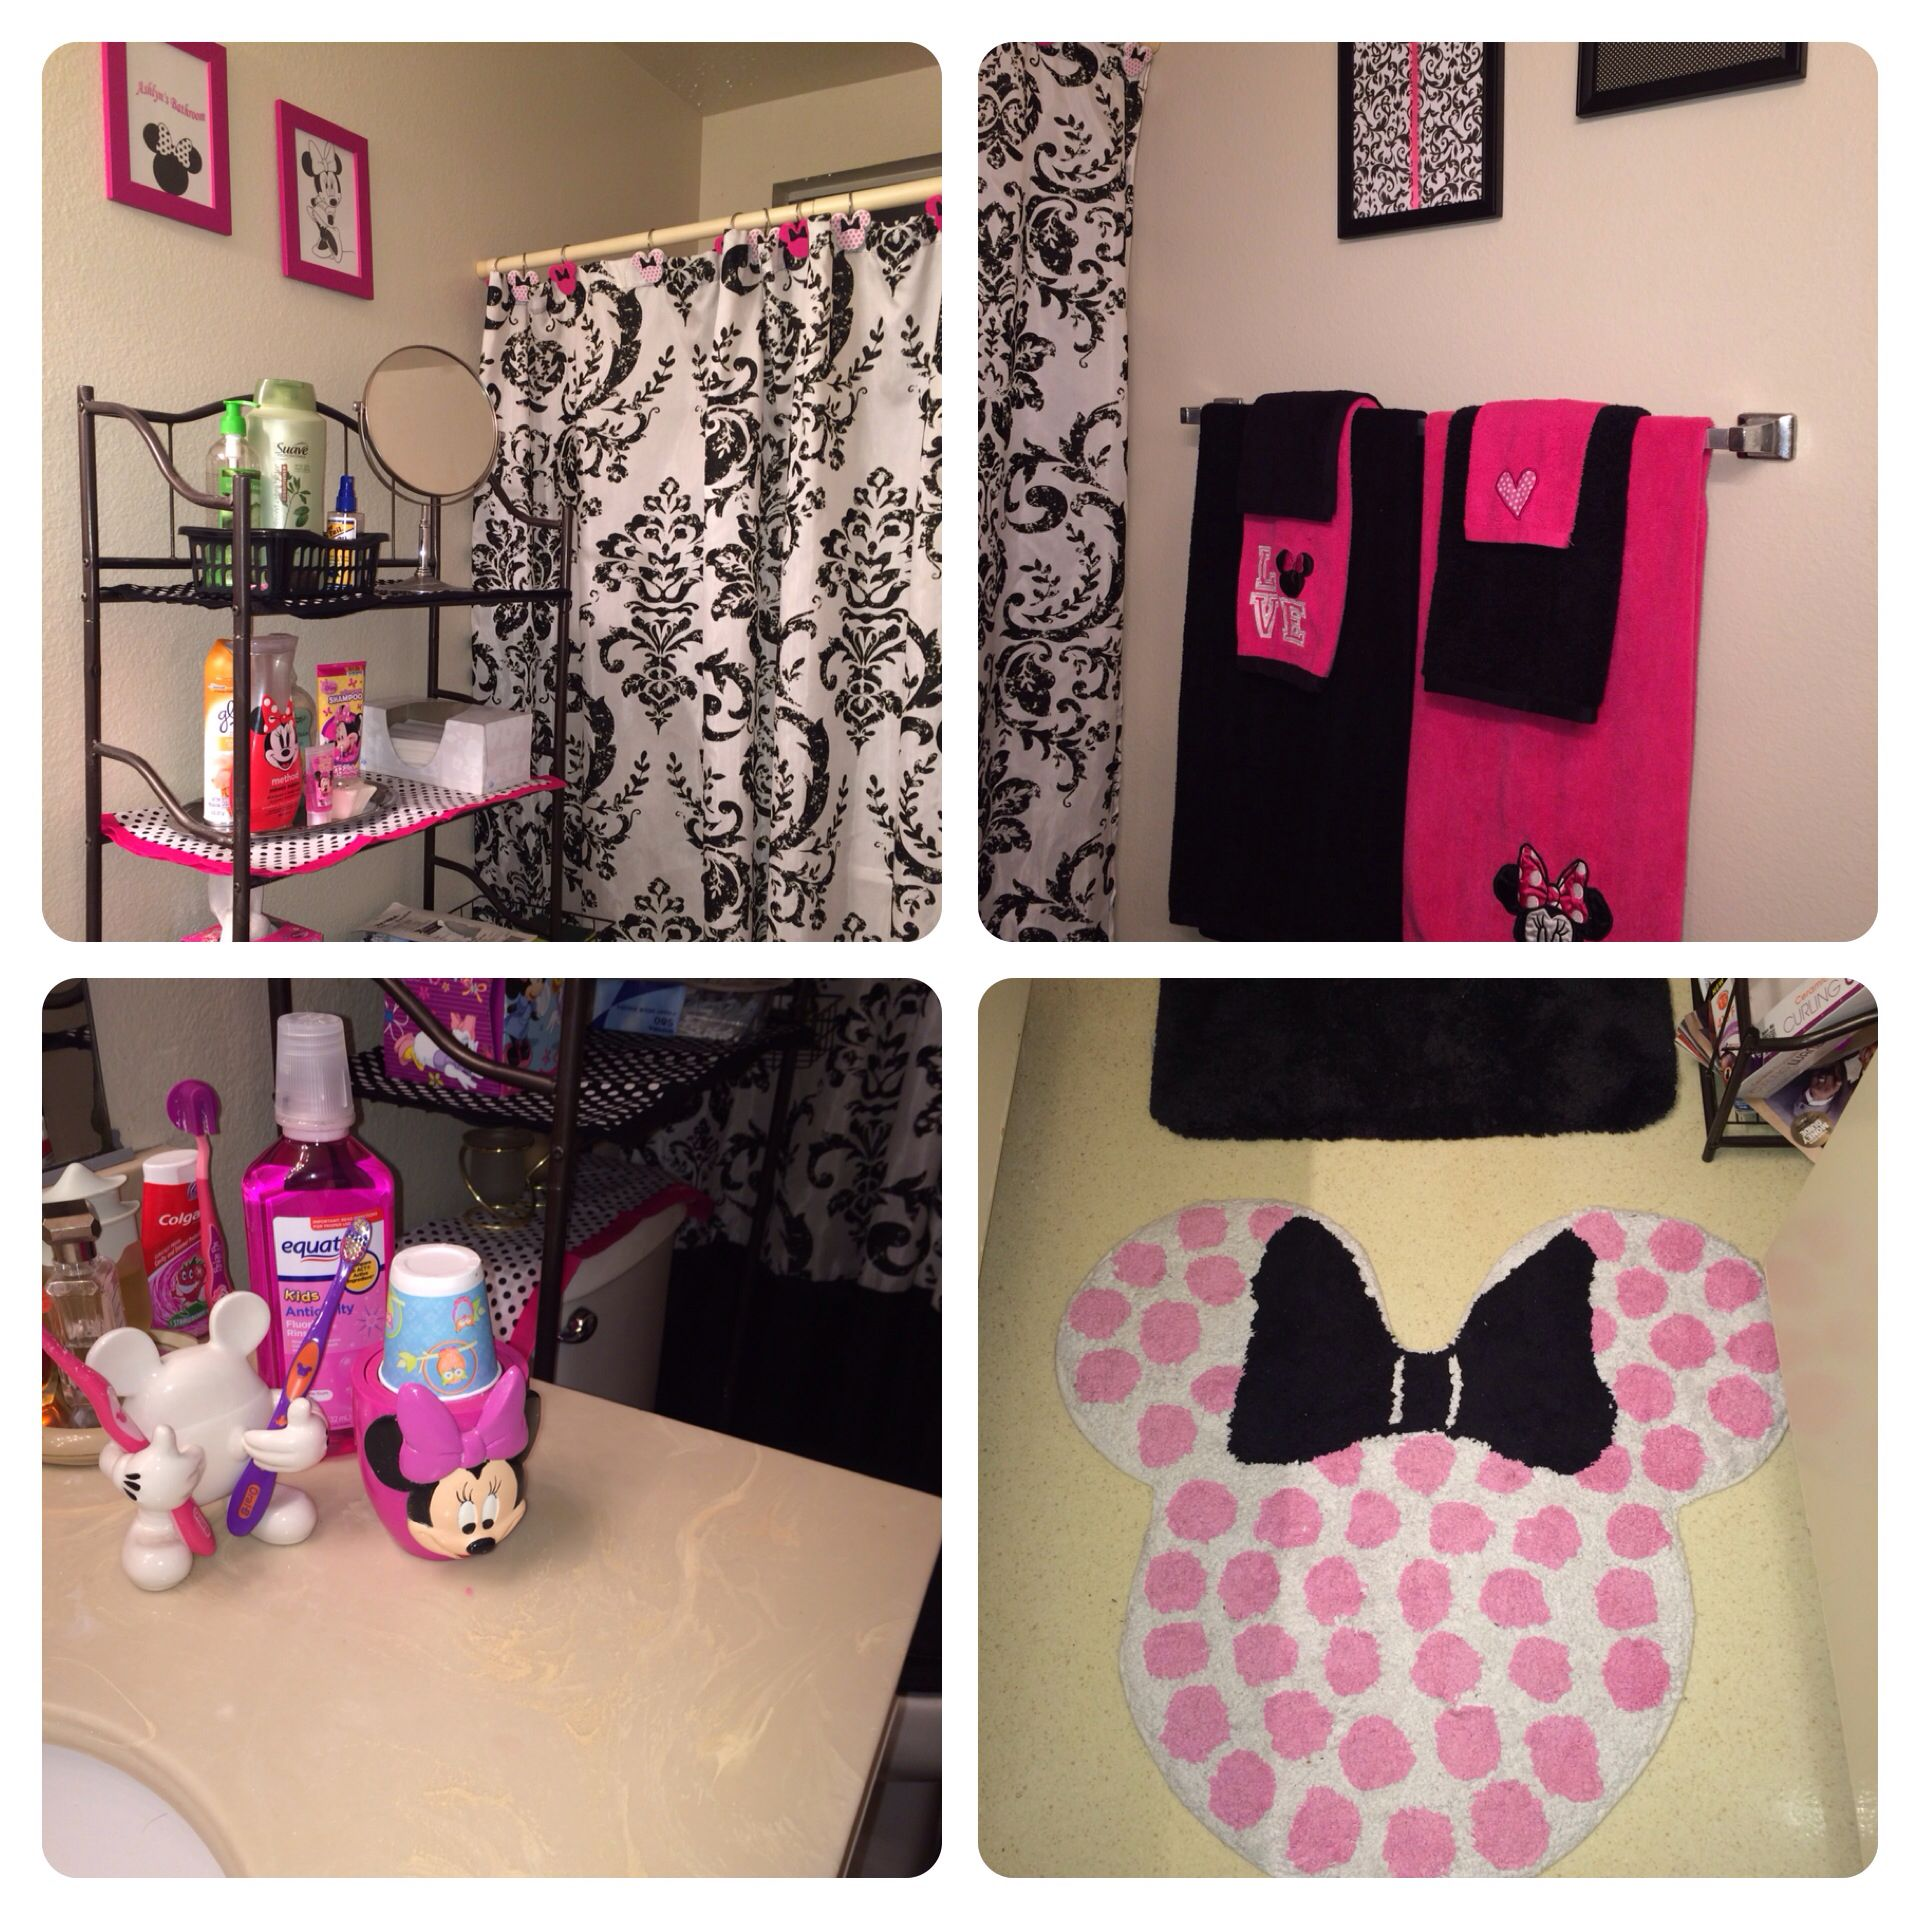 Mickey Mouse Bathroom Accessories Target kids minnie mouse bathroom | kids | pinterest | minnie mouse, mice